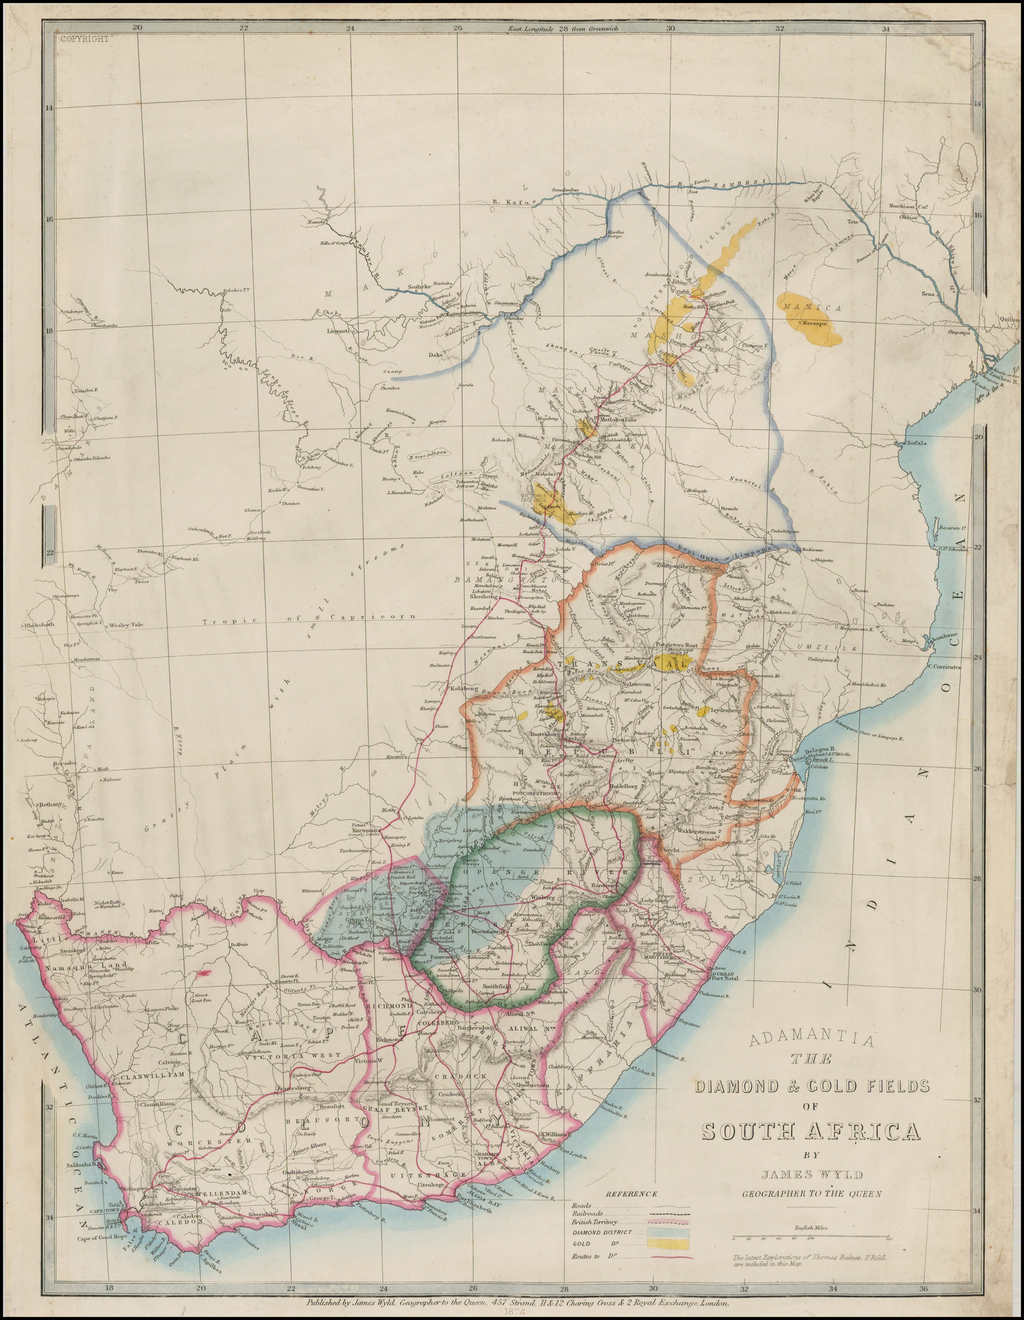 Adamantia The Diamond Gold Fields of South Africa by James Wyld Geographer to the Queen By James Wyld